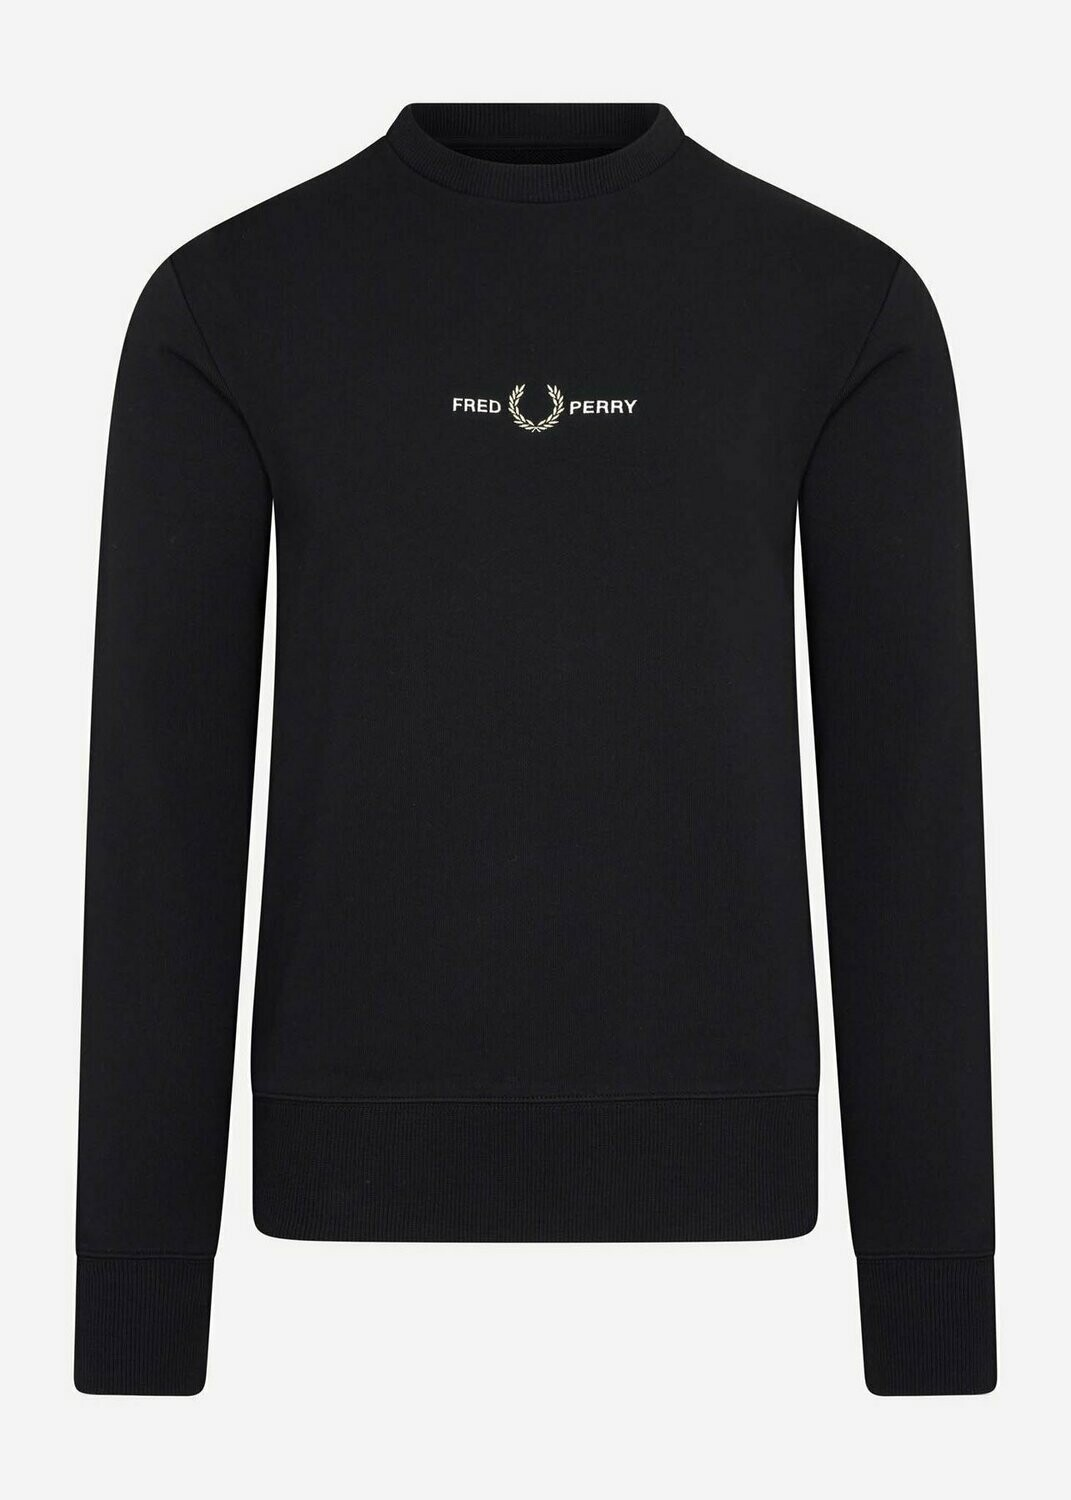 Fred Perry | Sweatshirt Embroidered | Black